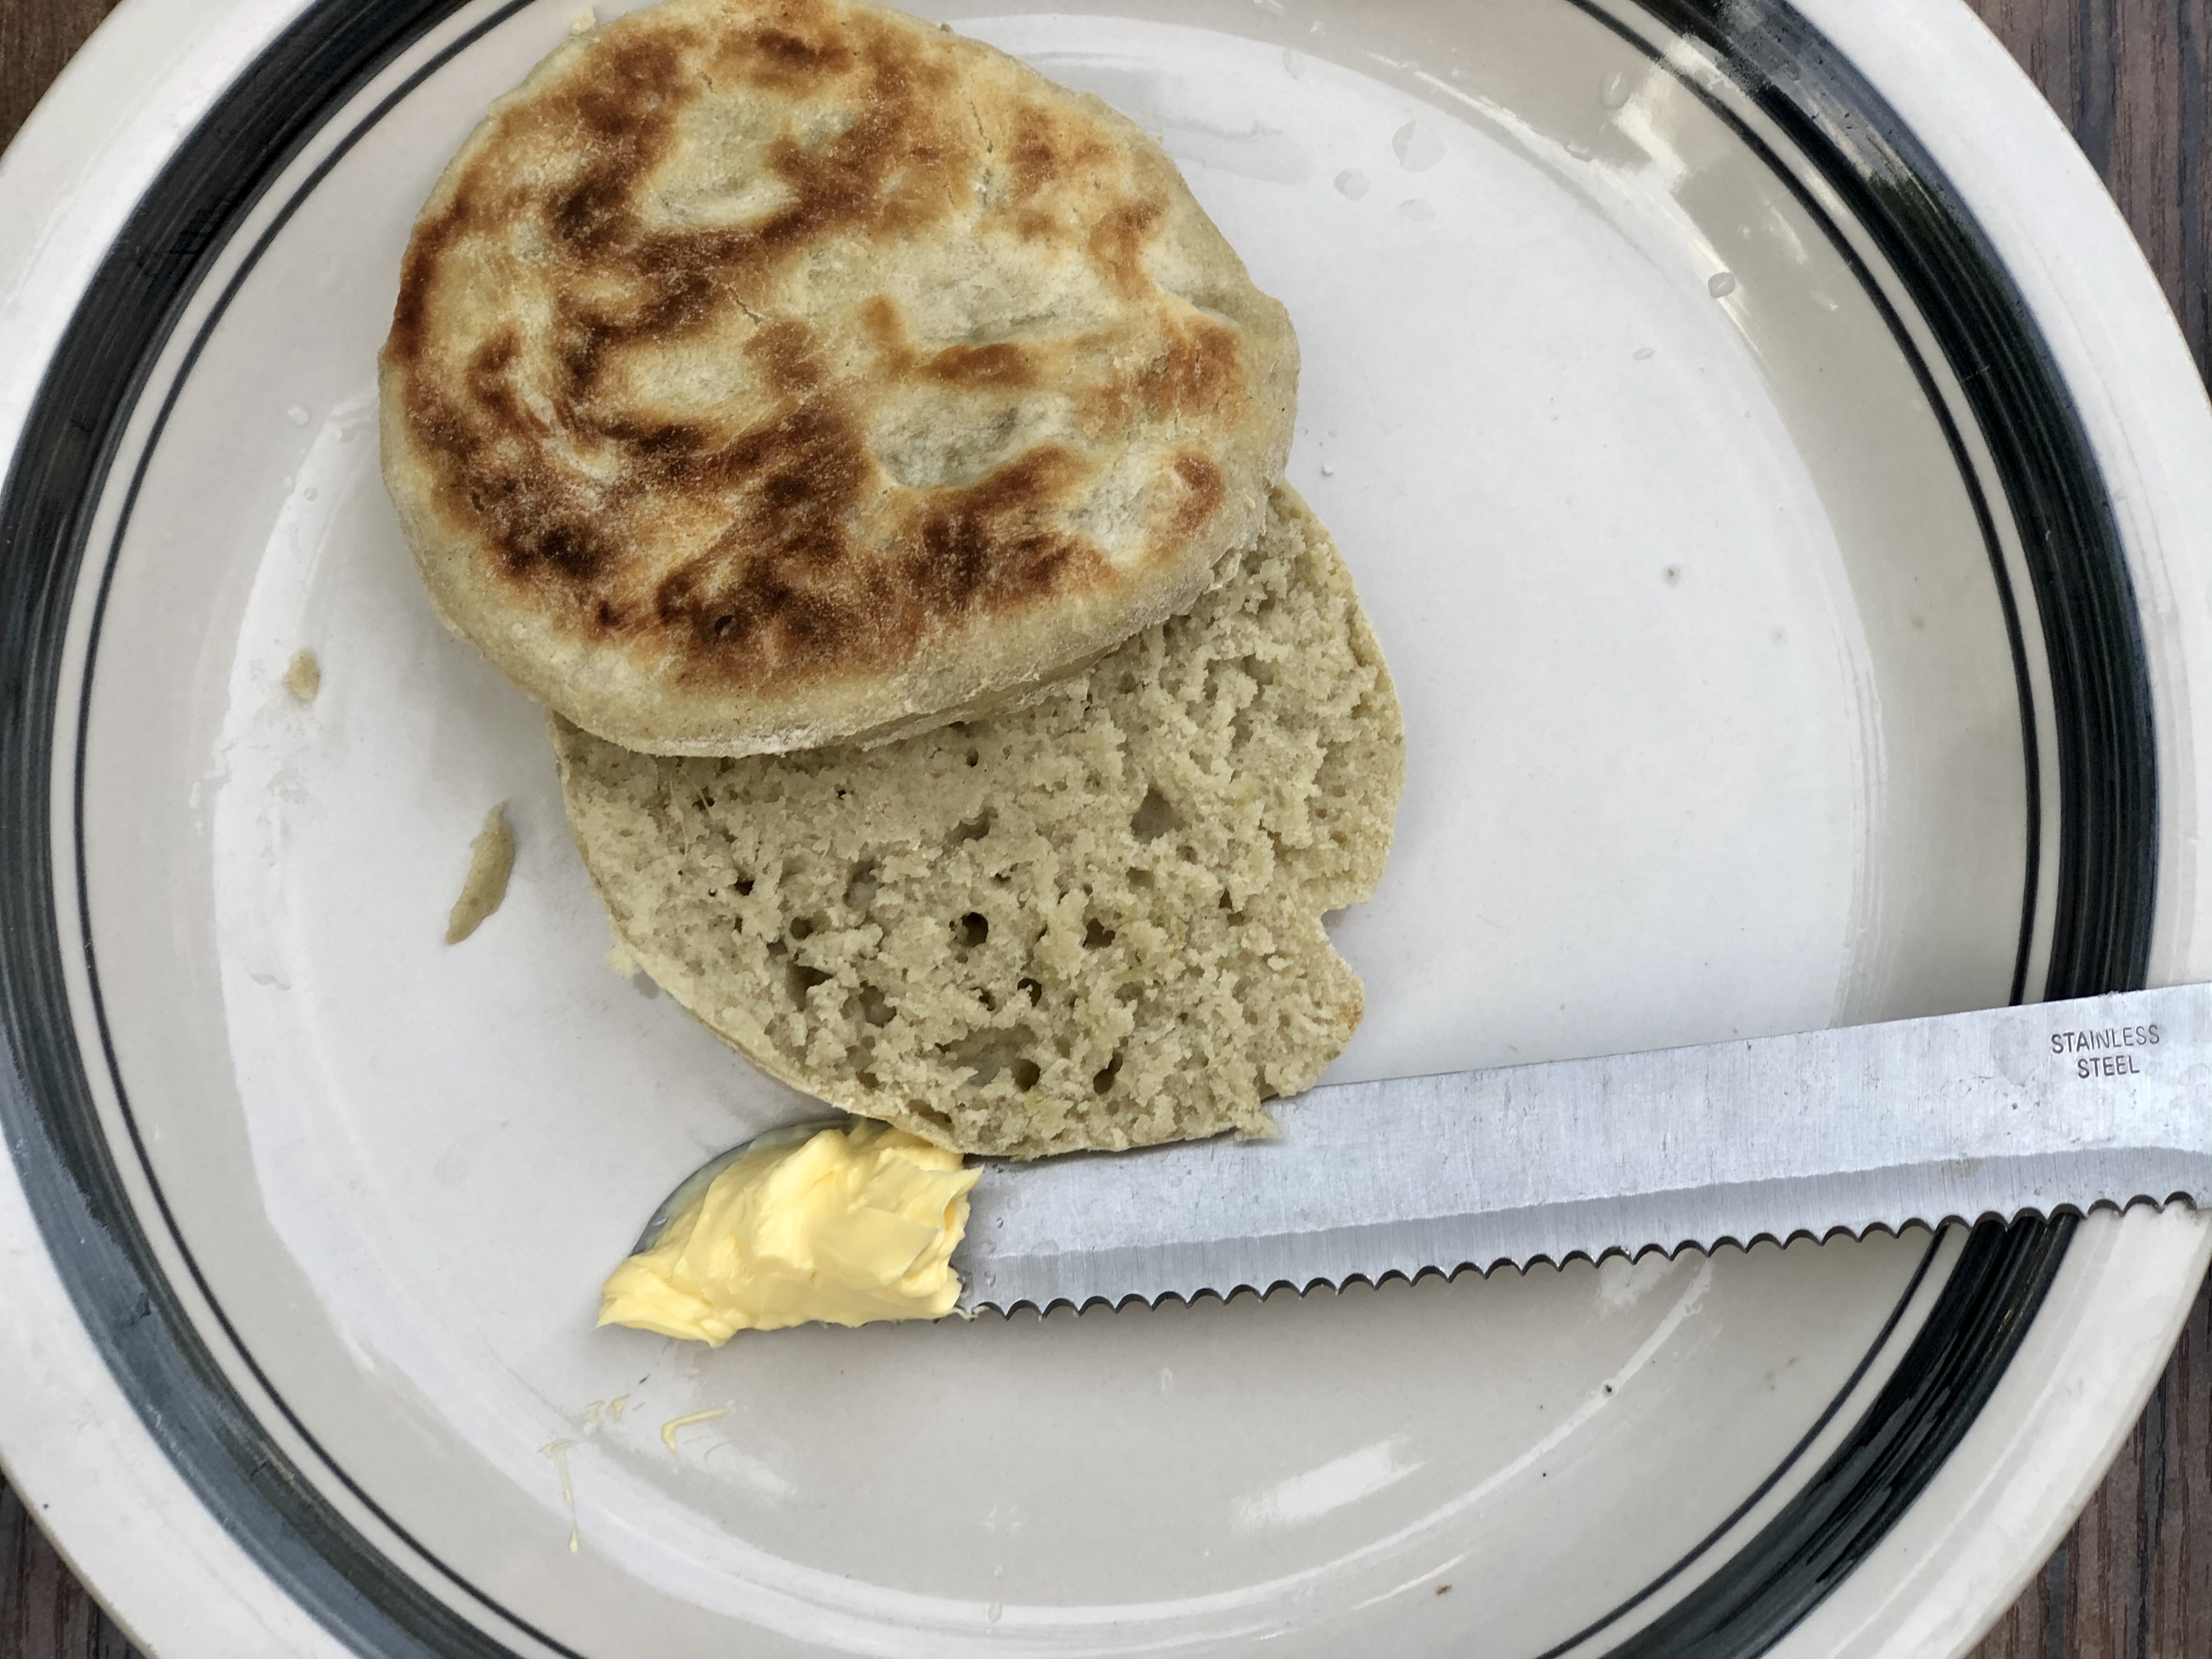 Cooked no knead, no oven bread (buns) and butter